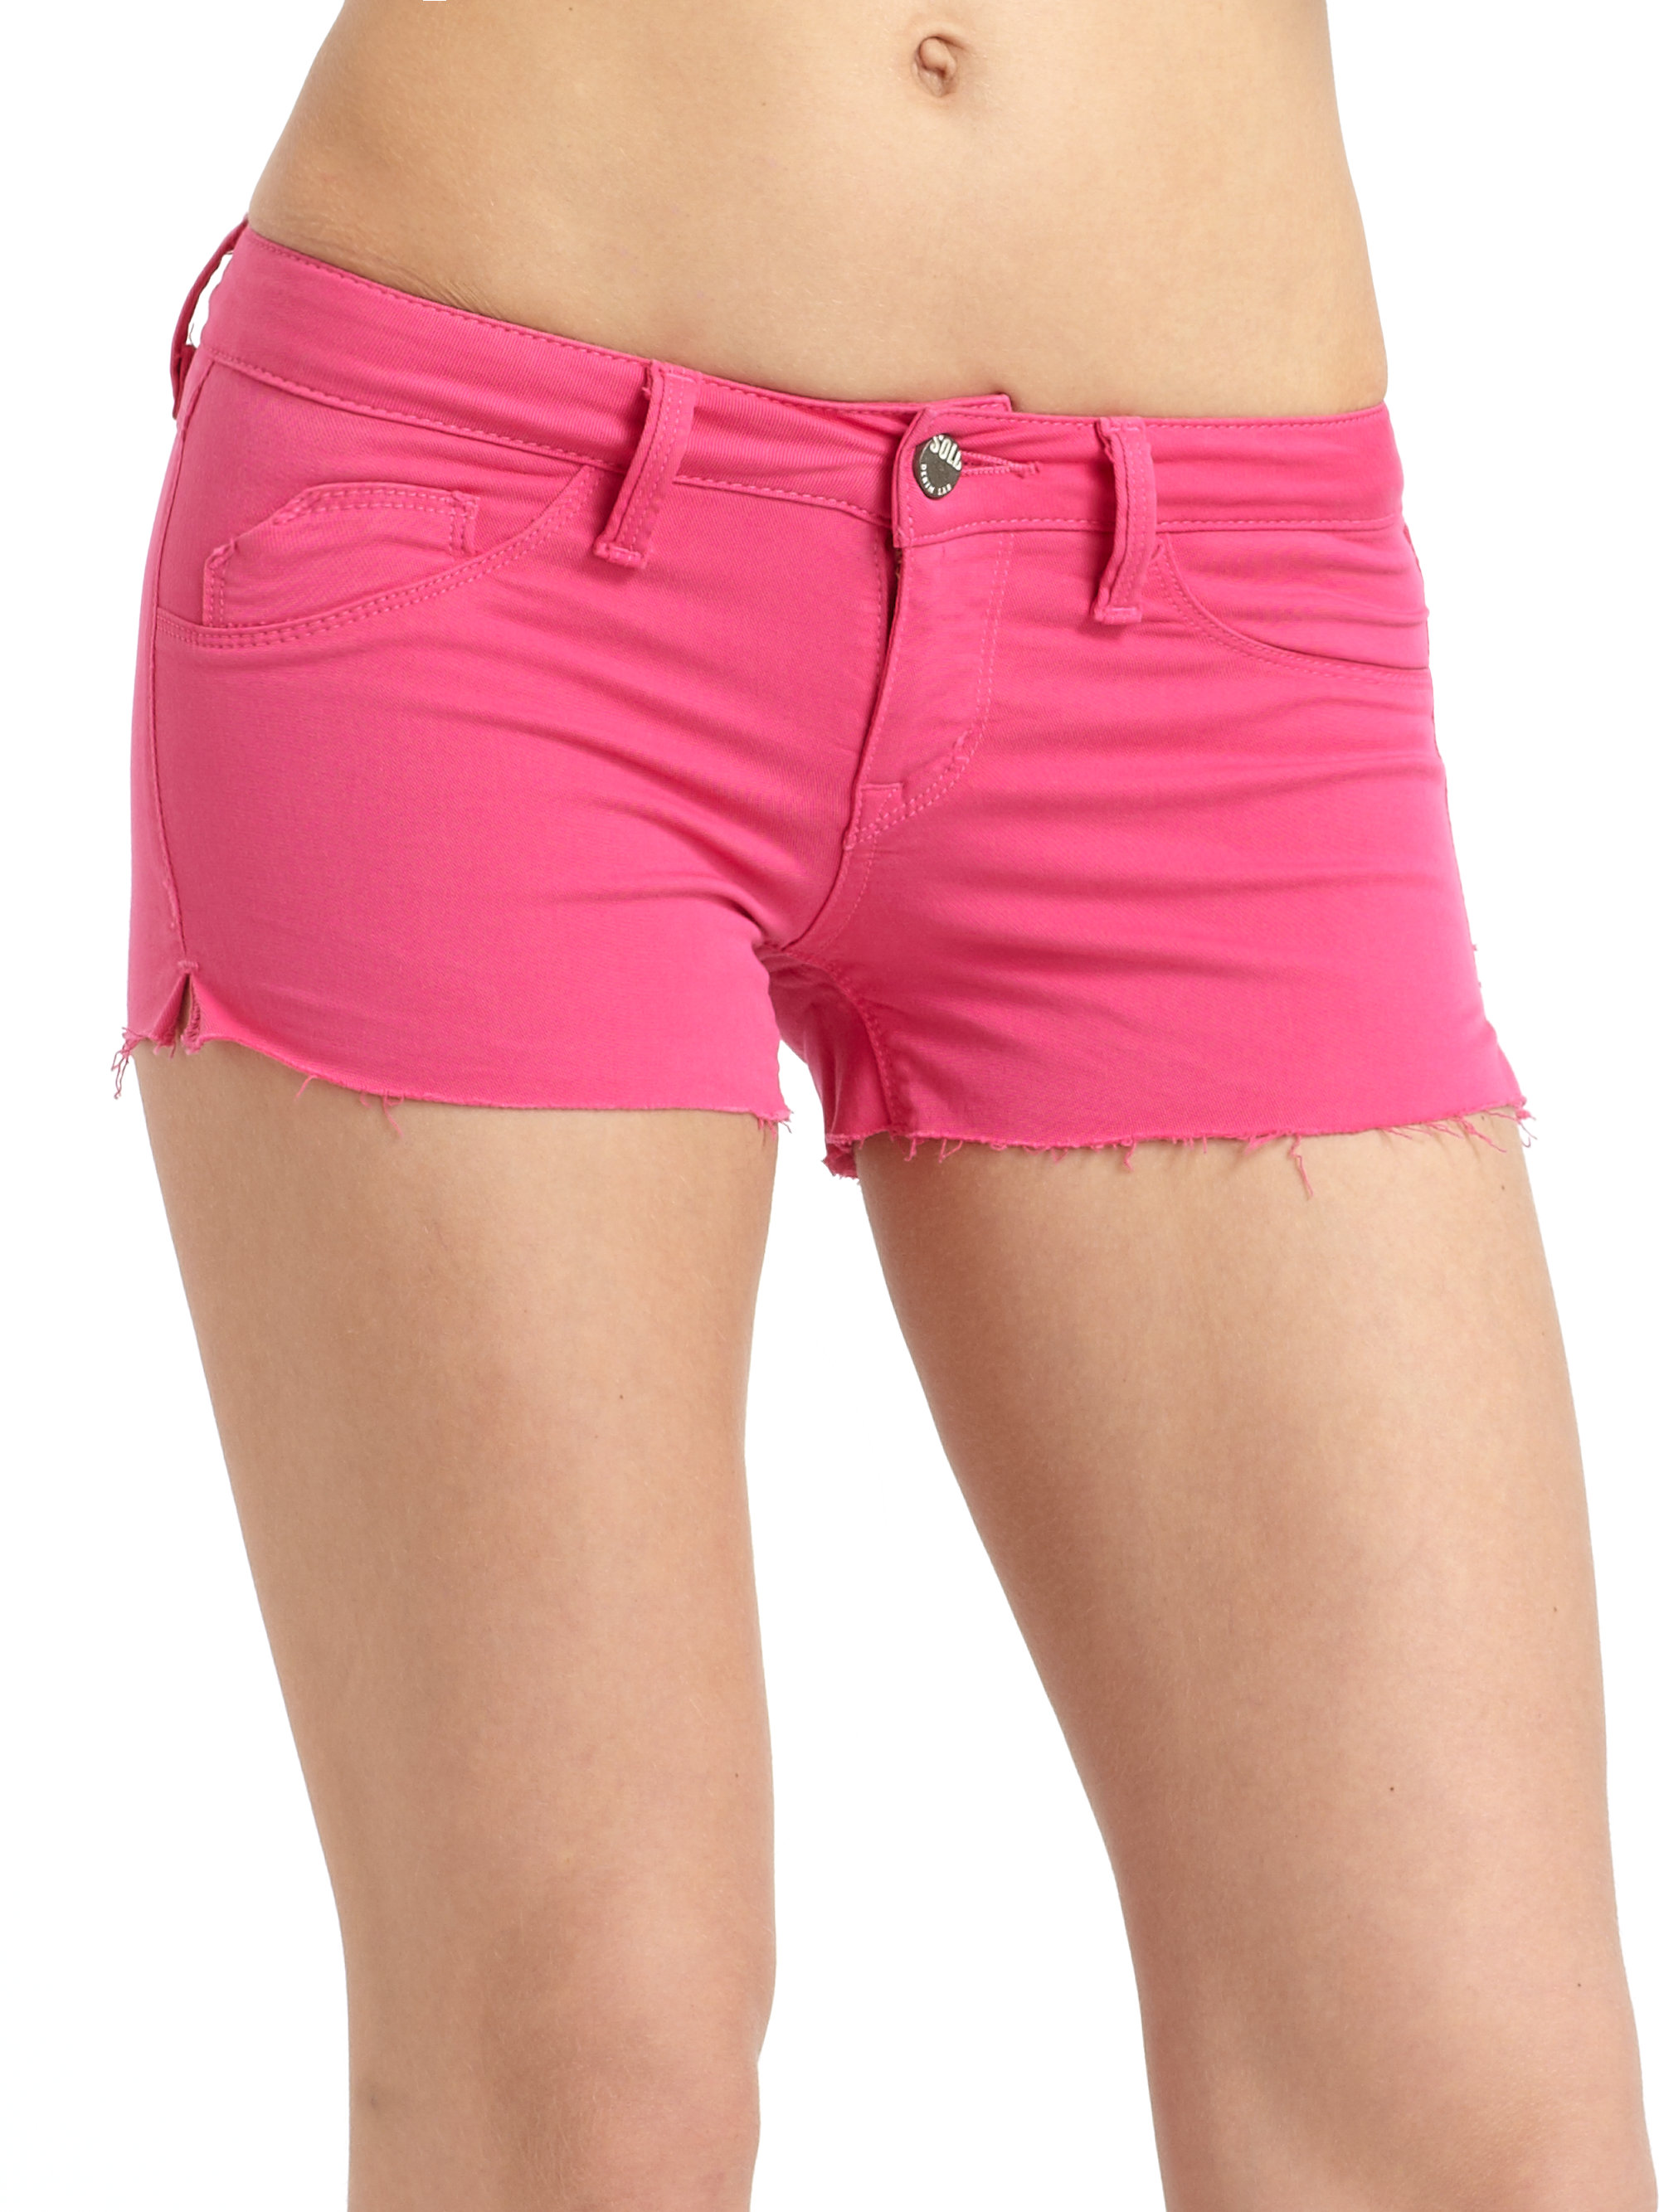 Sold design lab Bleeker Colored Denim Shorts in Pink | Lyst